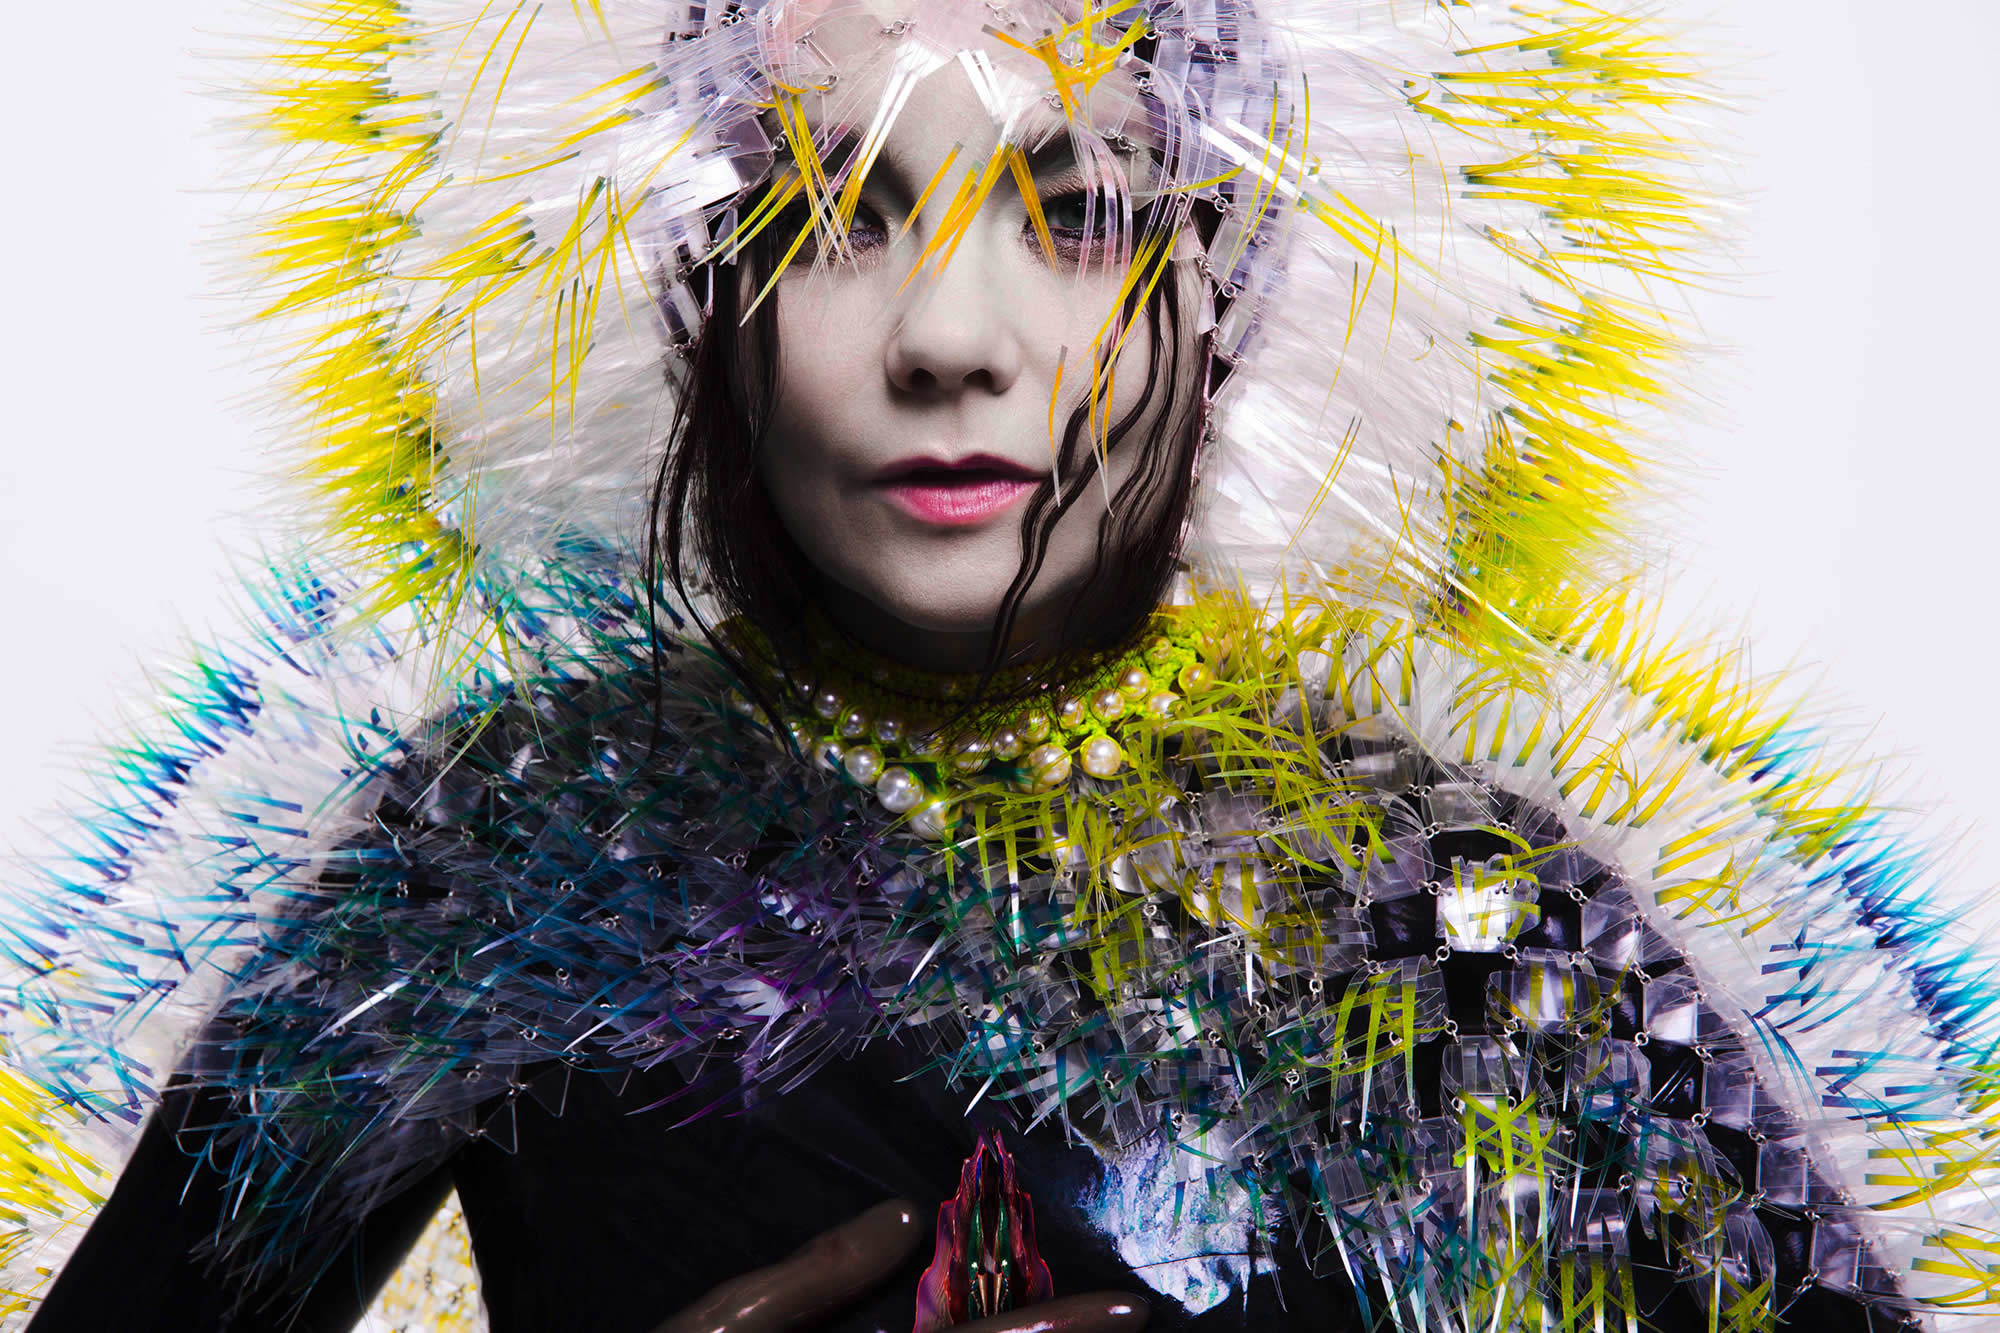 The Science, Art and Nature of Bjork